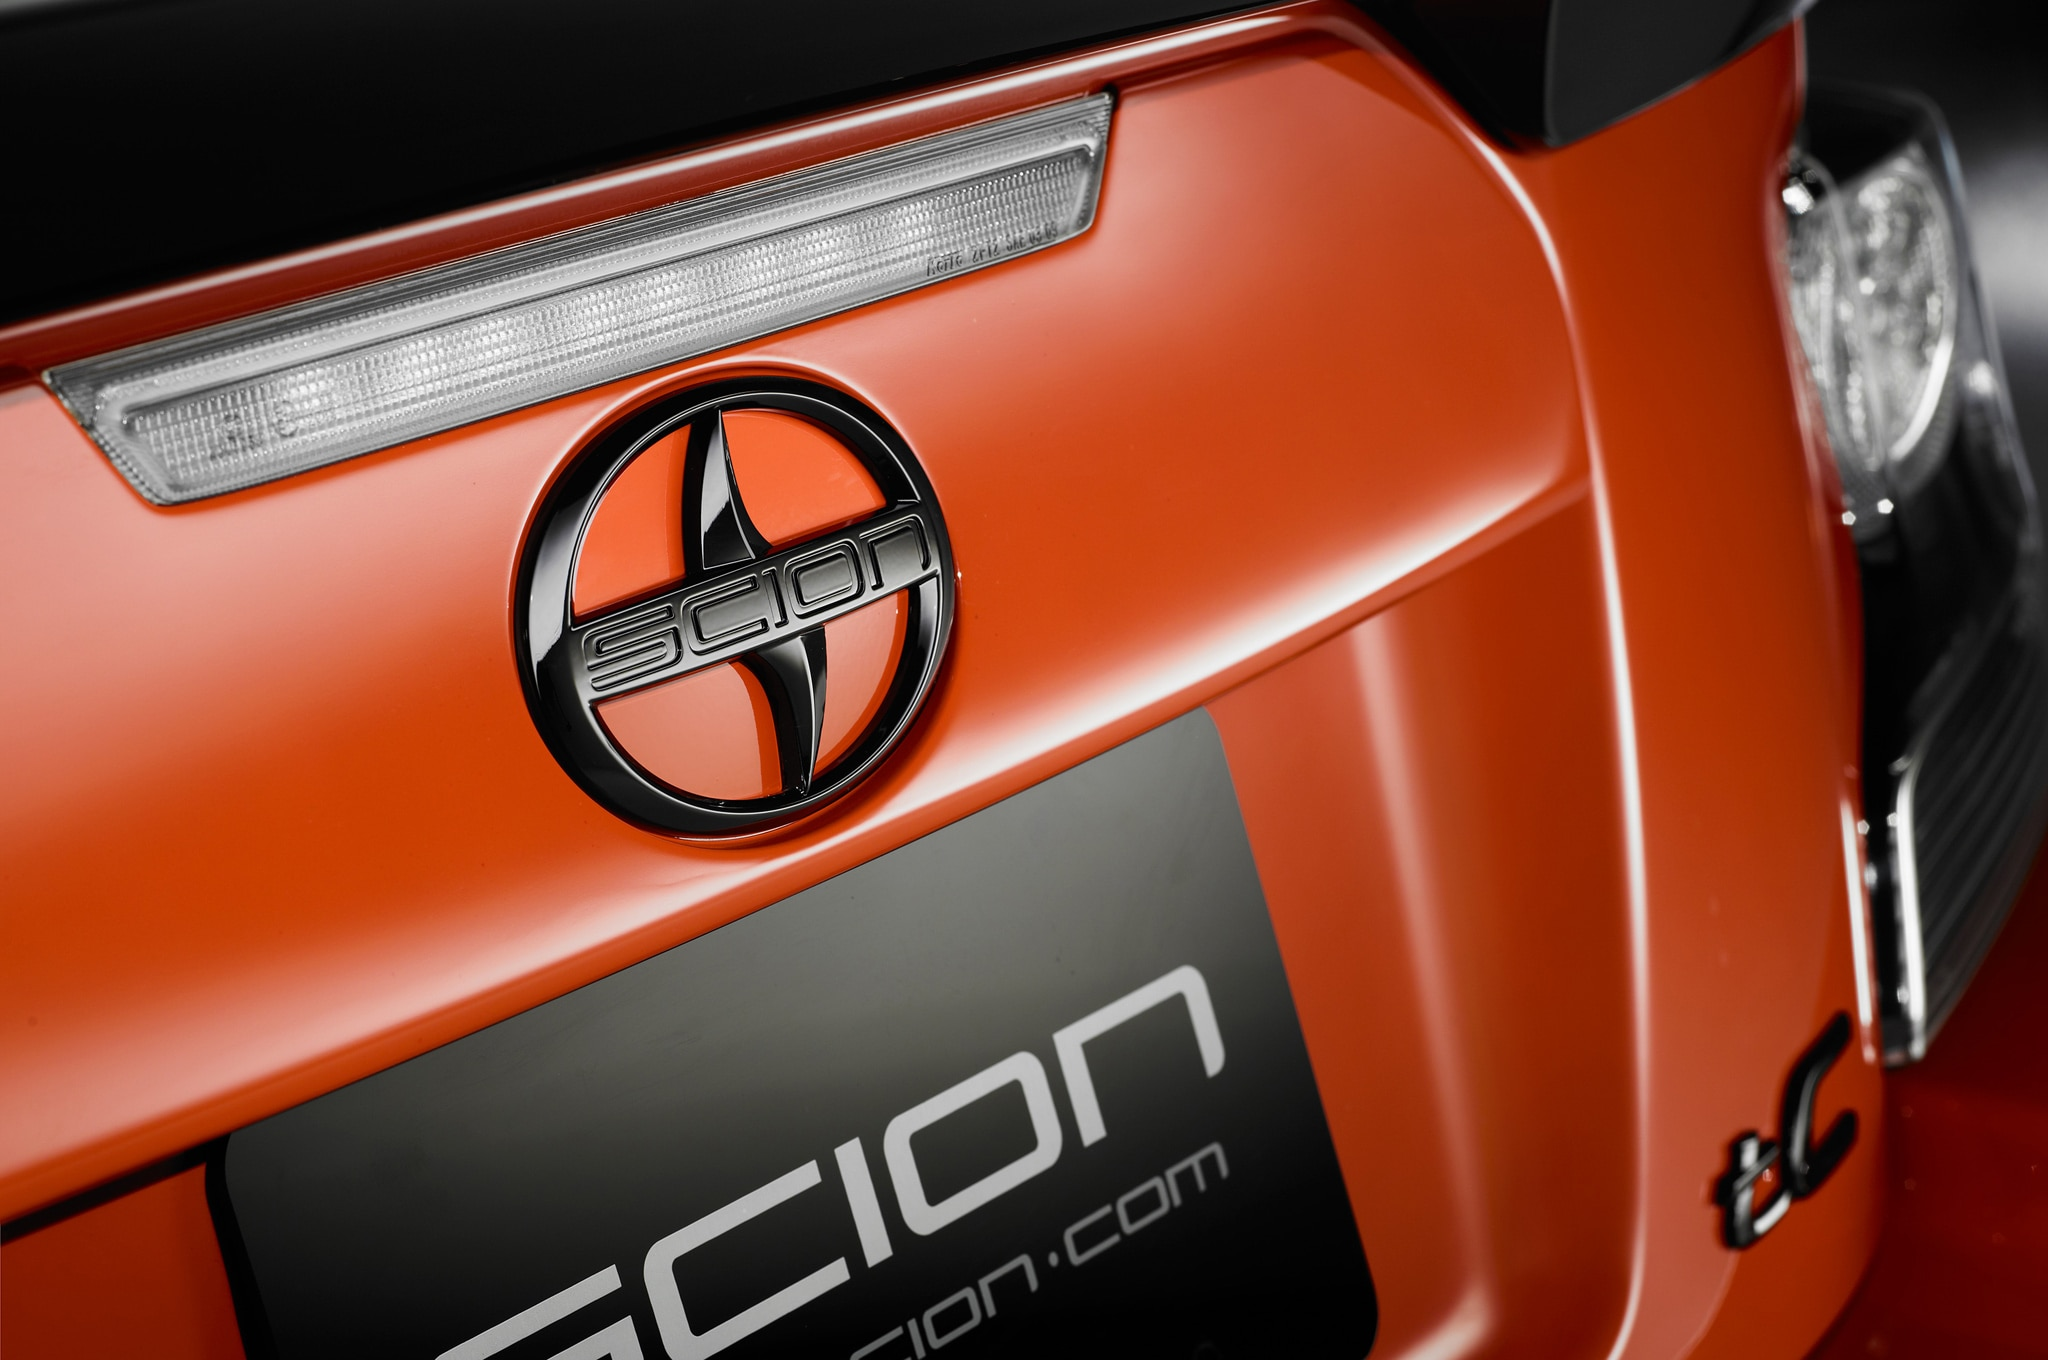 2015 Scion TC Release Series 9 Rear Badge Closeup